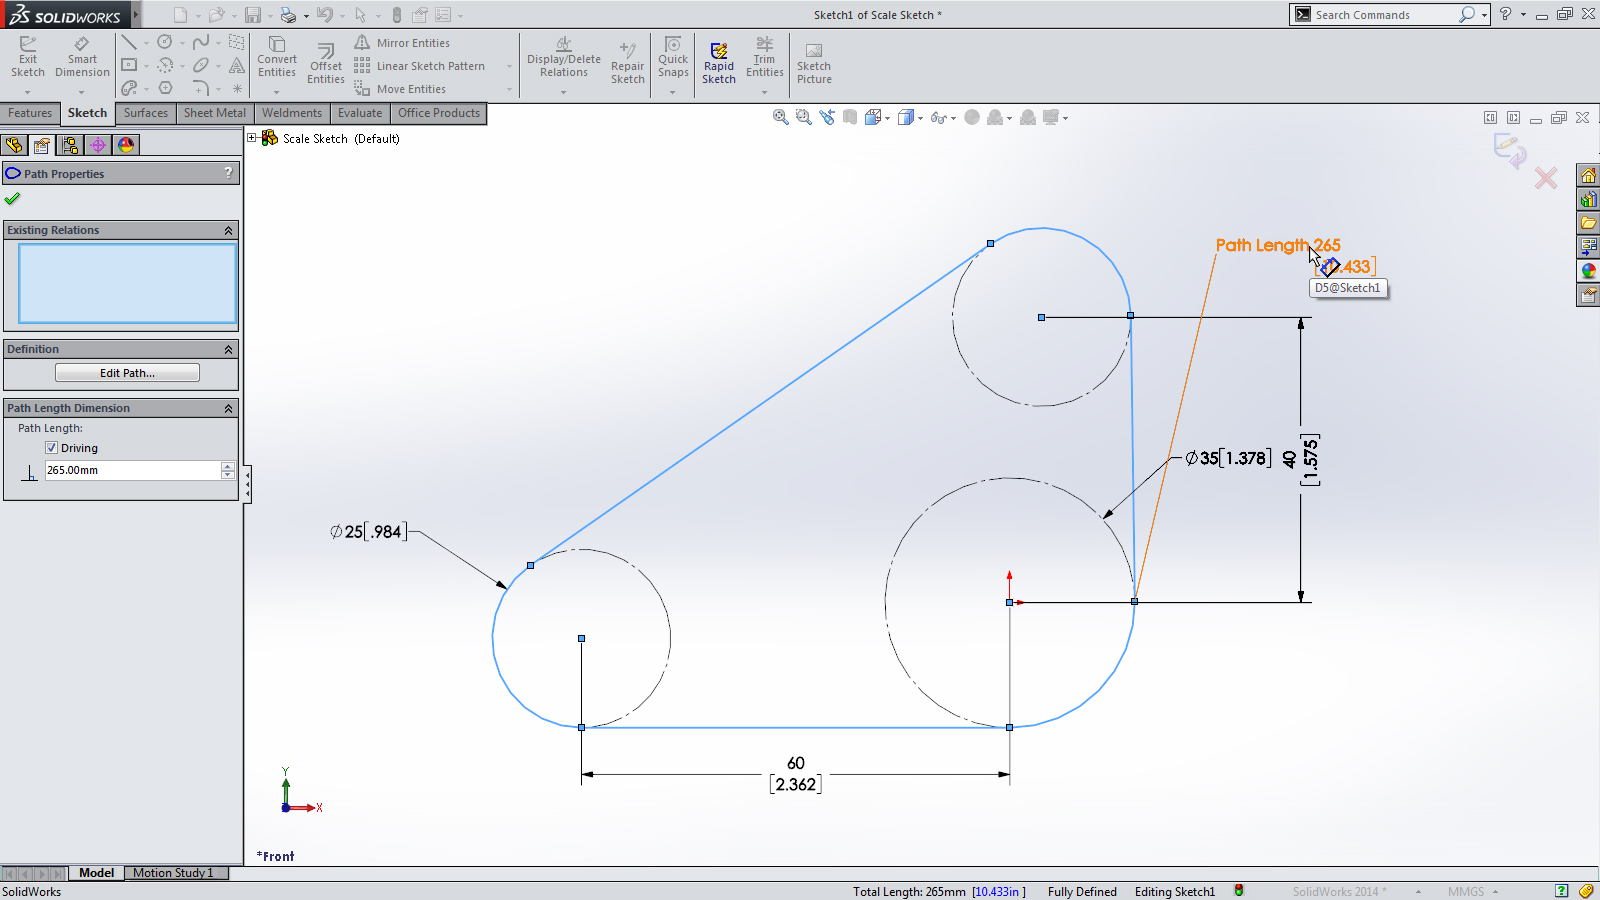 SolidWorks 2014 Sneak Peek: Path Length Dimension